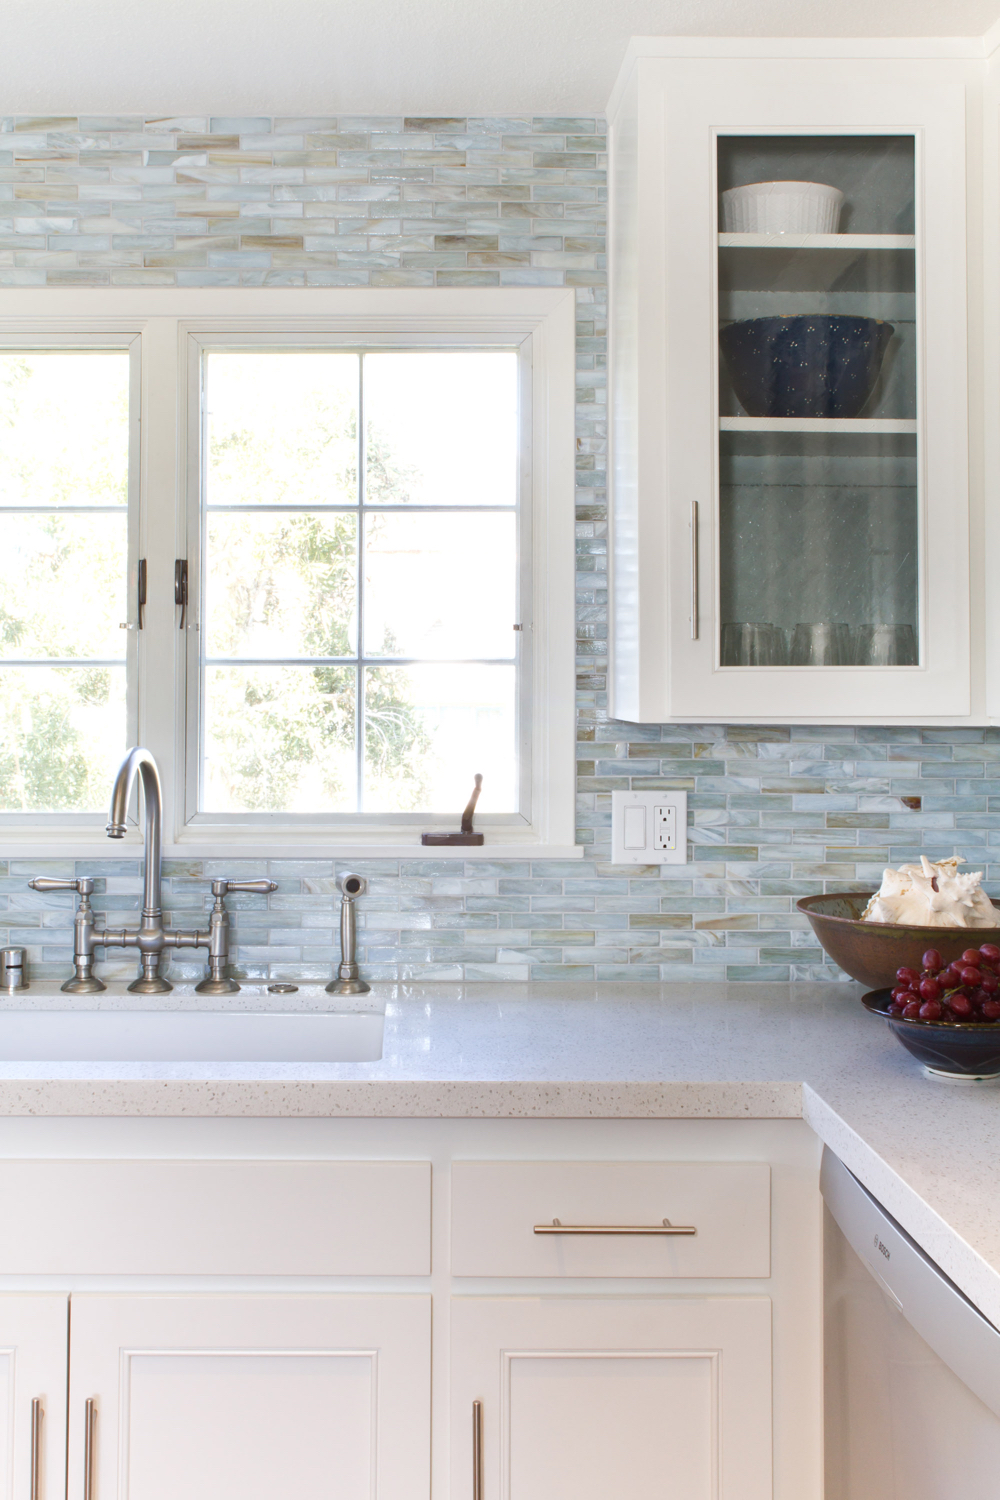 Pearl tile kitchen backsplash